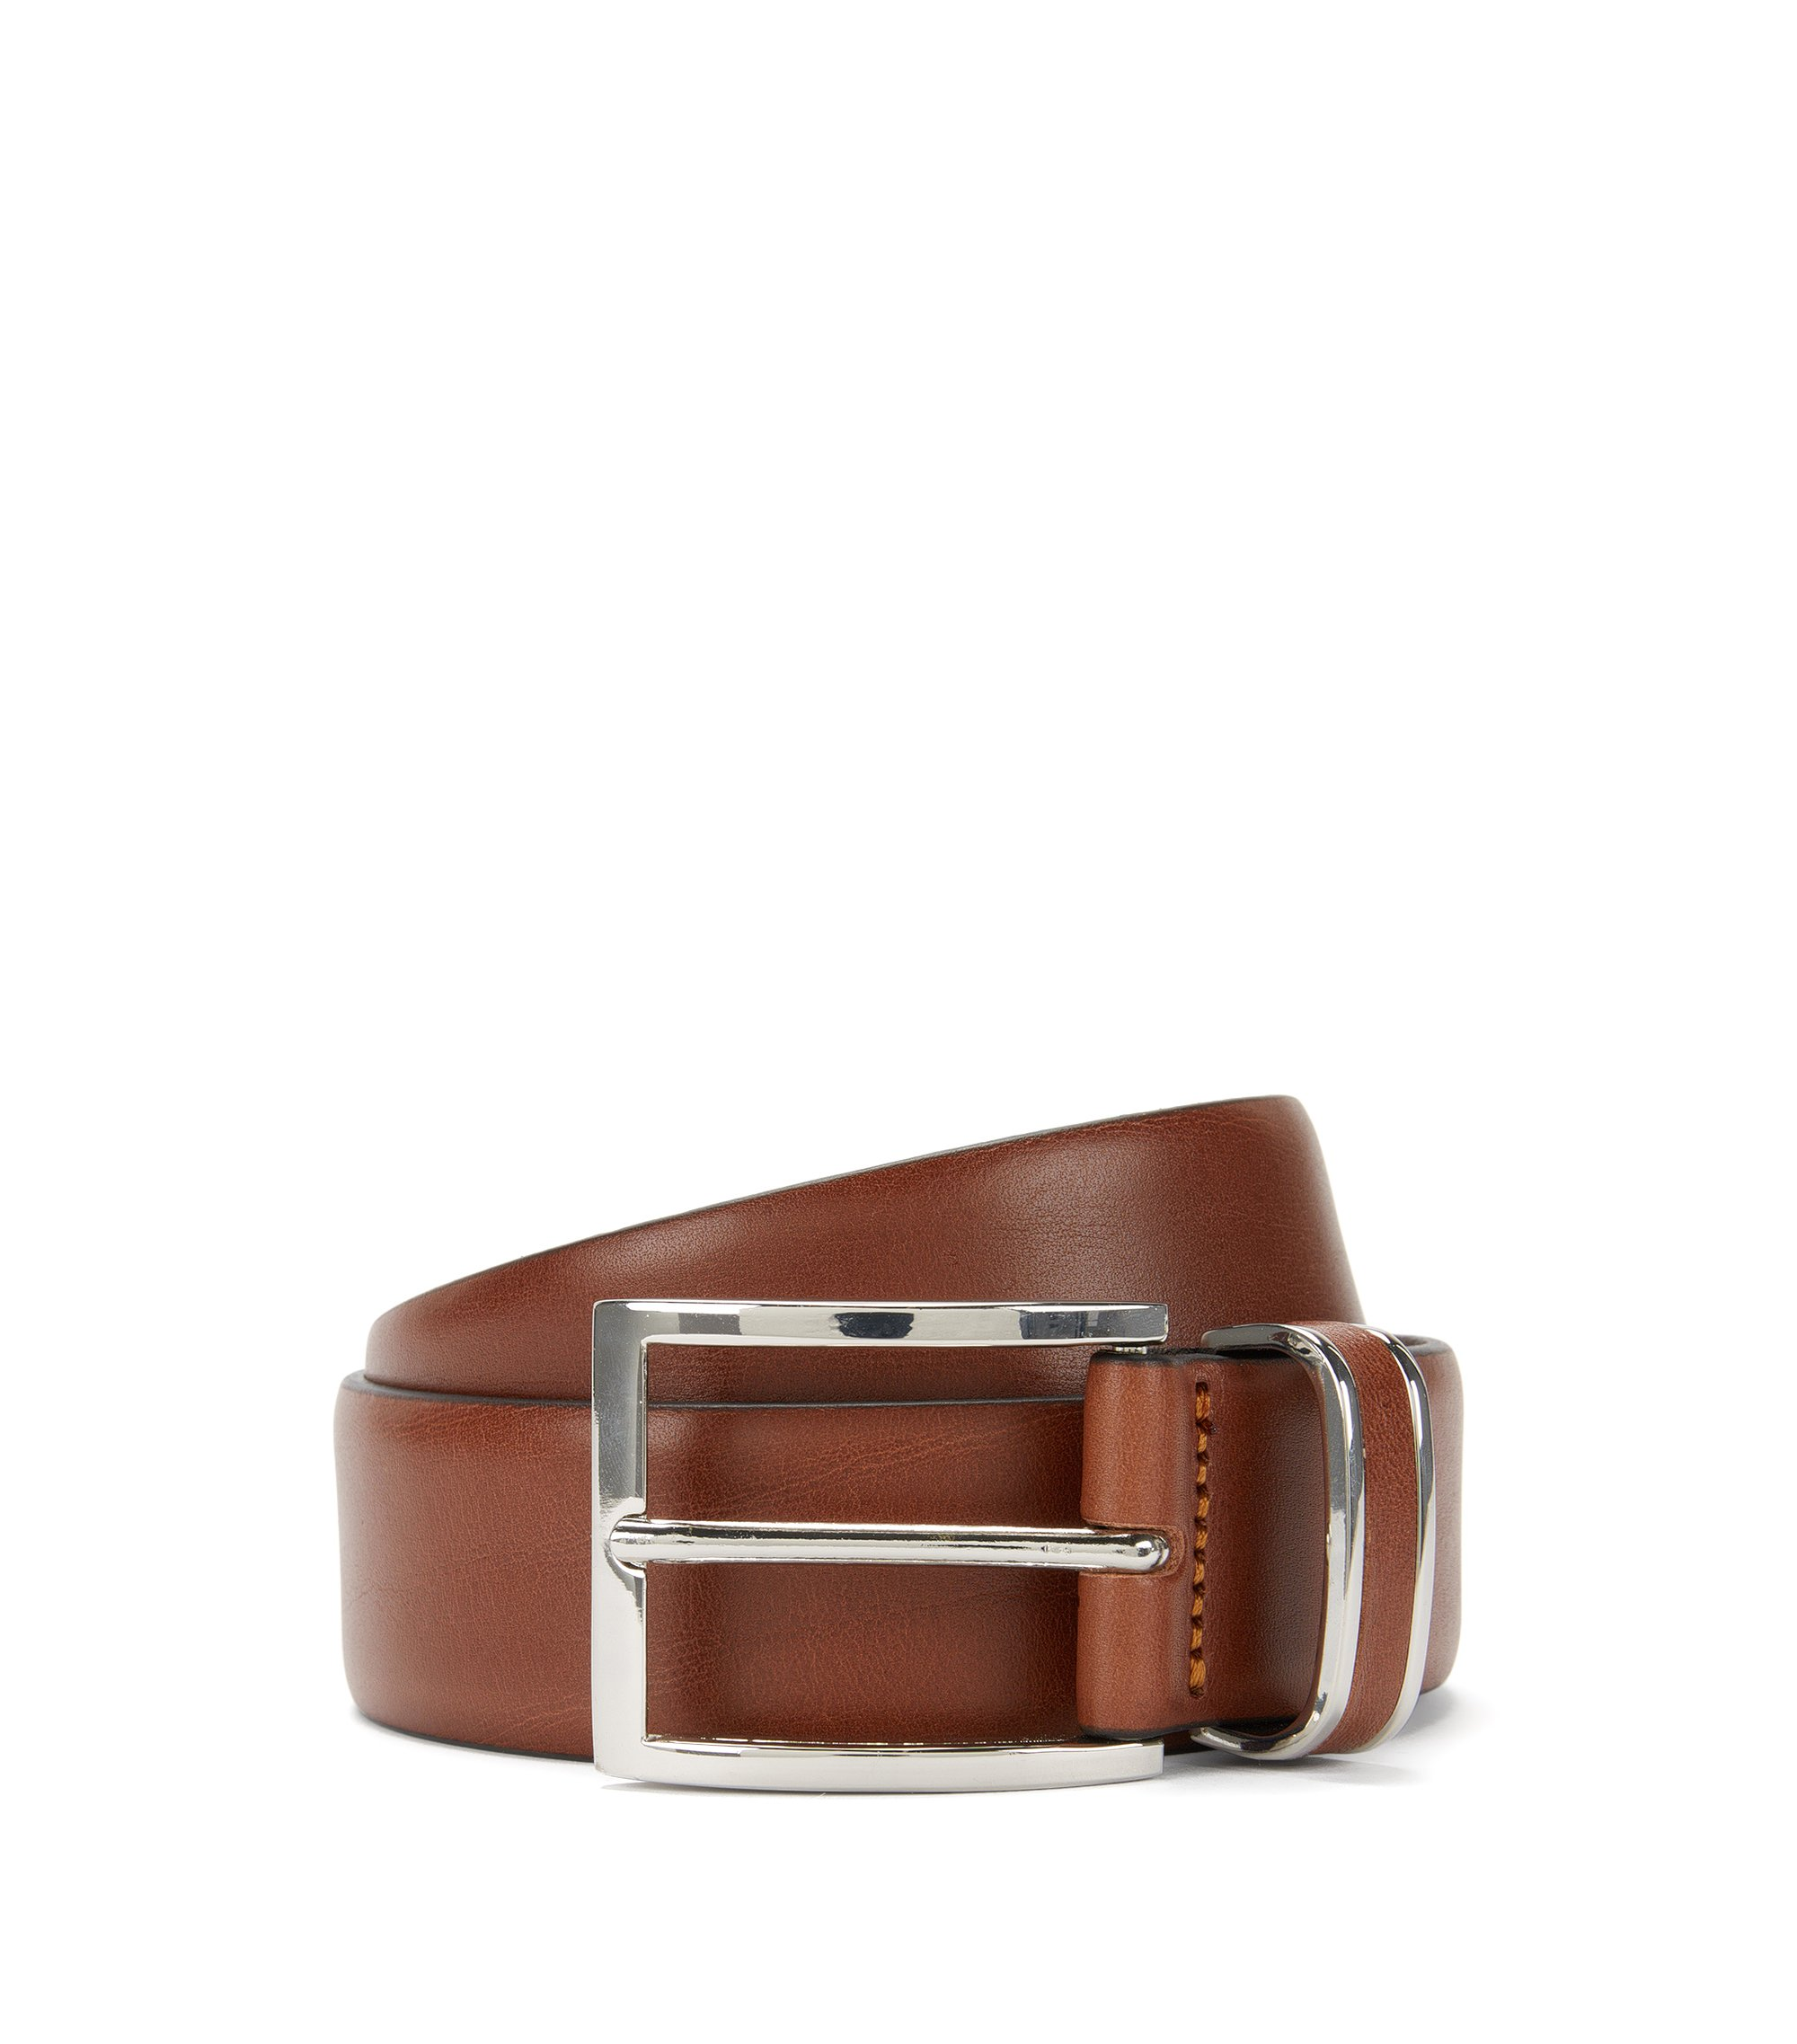 'FROPPIN' | Leather Belt, Brown